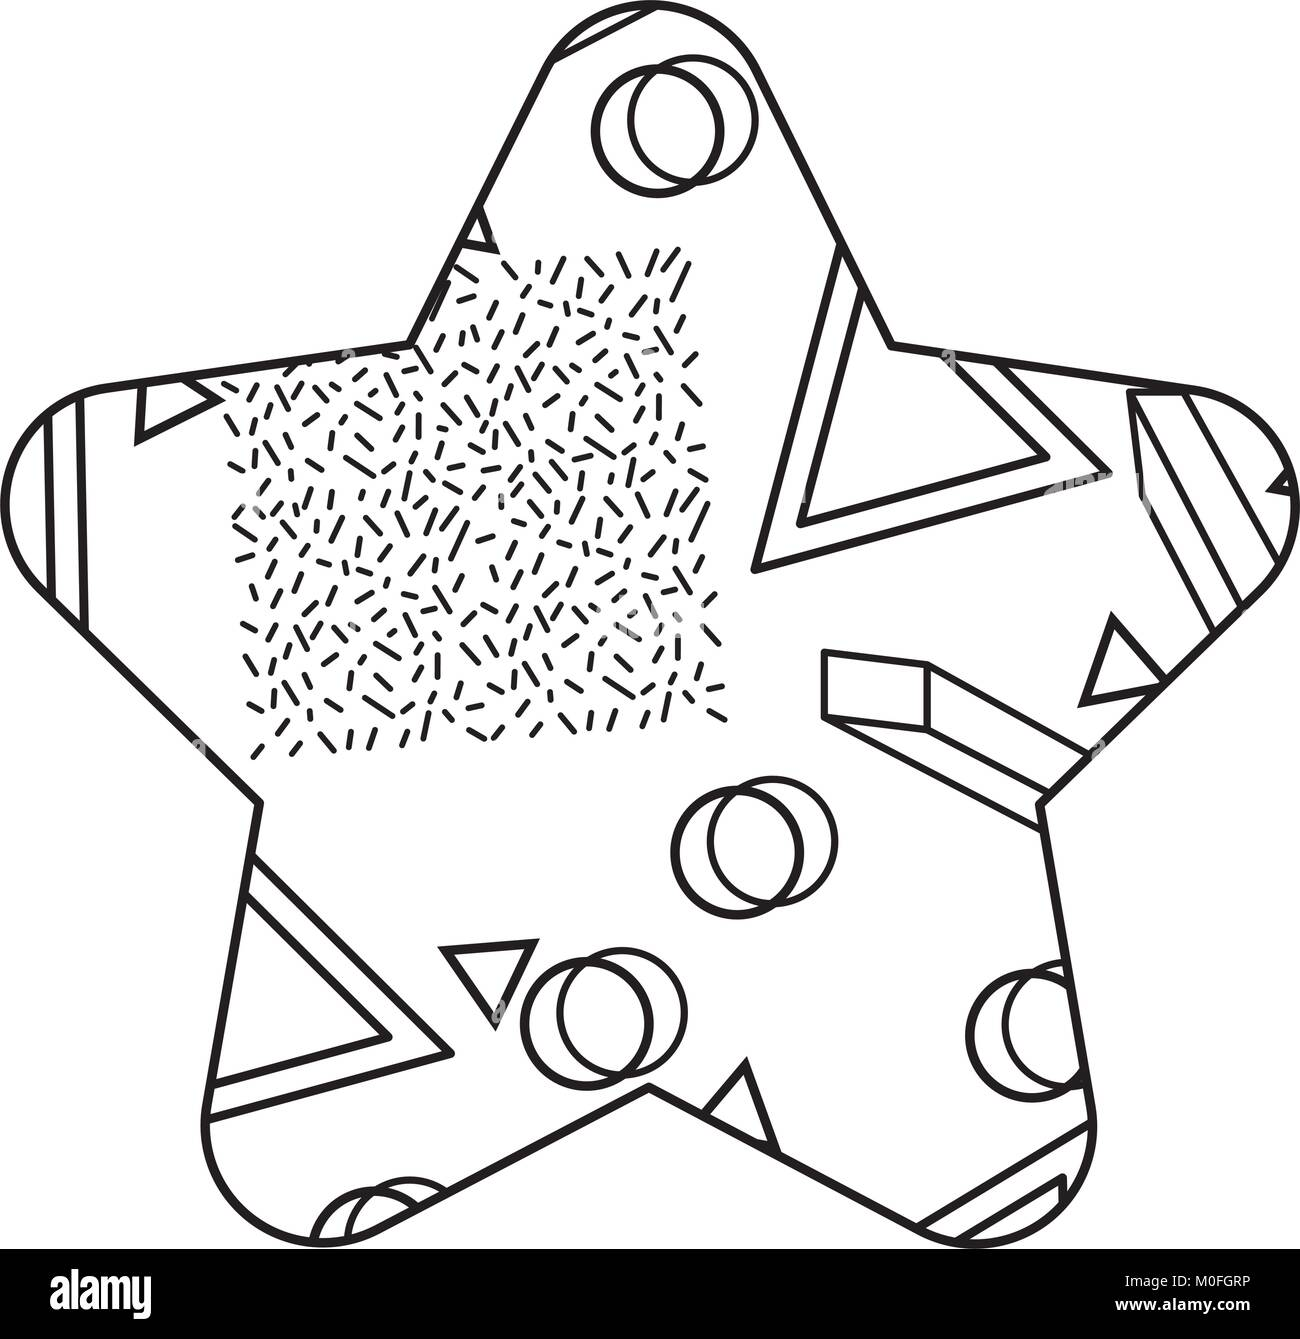 90s style black and white stock photos images alamy Packard Convertible pattern shape star with geometric memphis style stock image